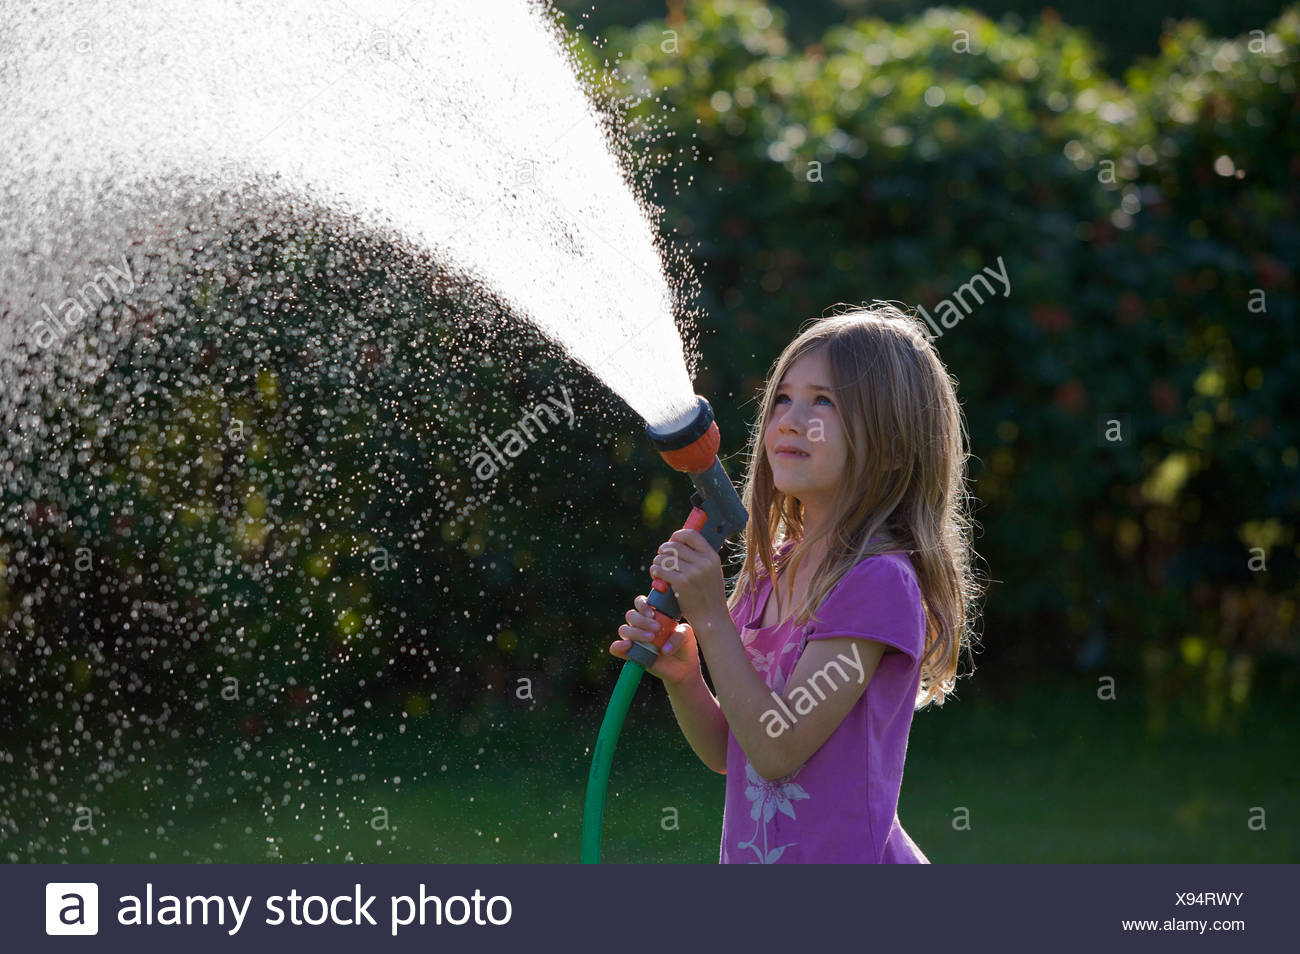 Girl with water hose